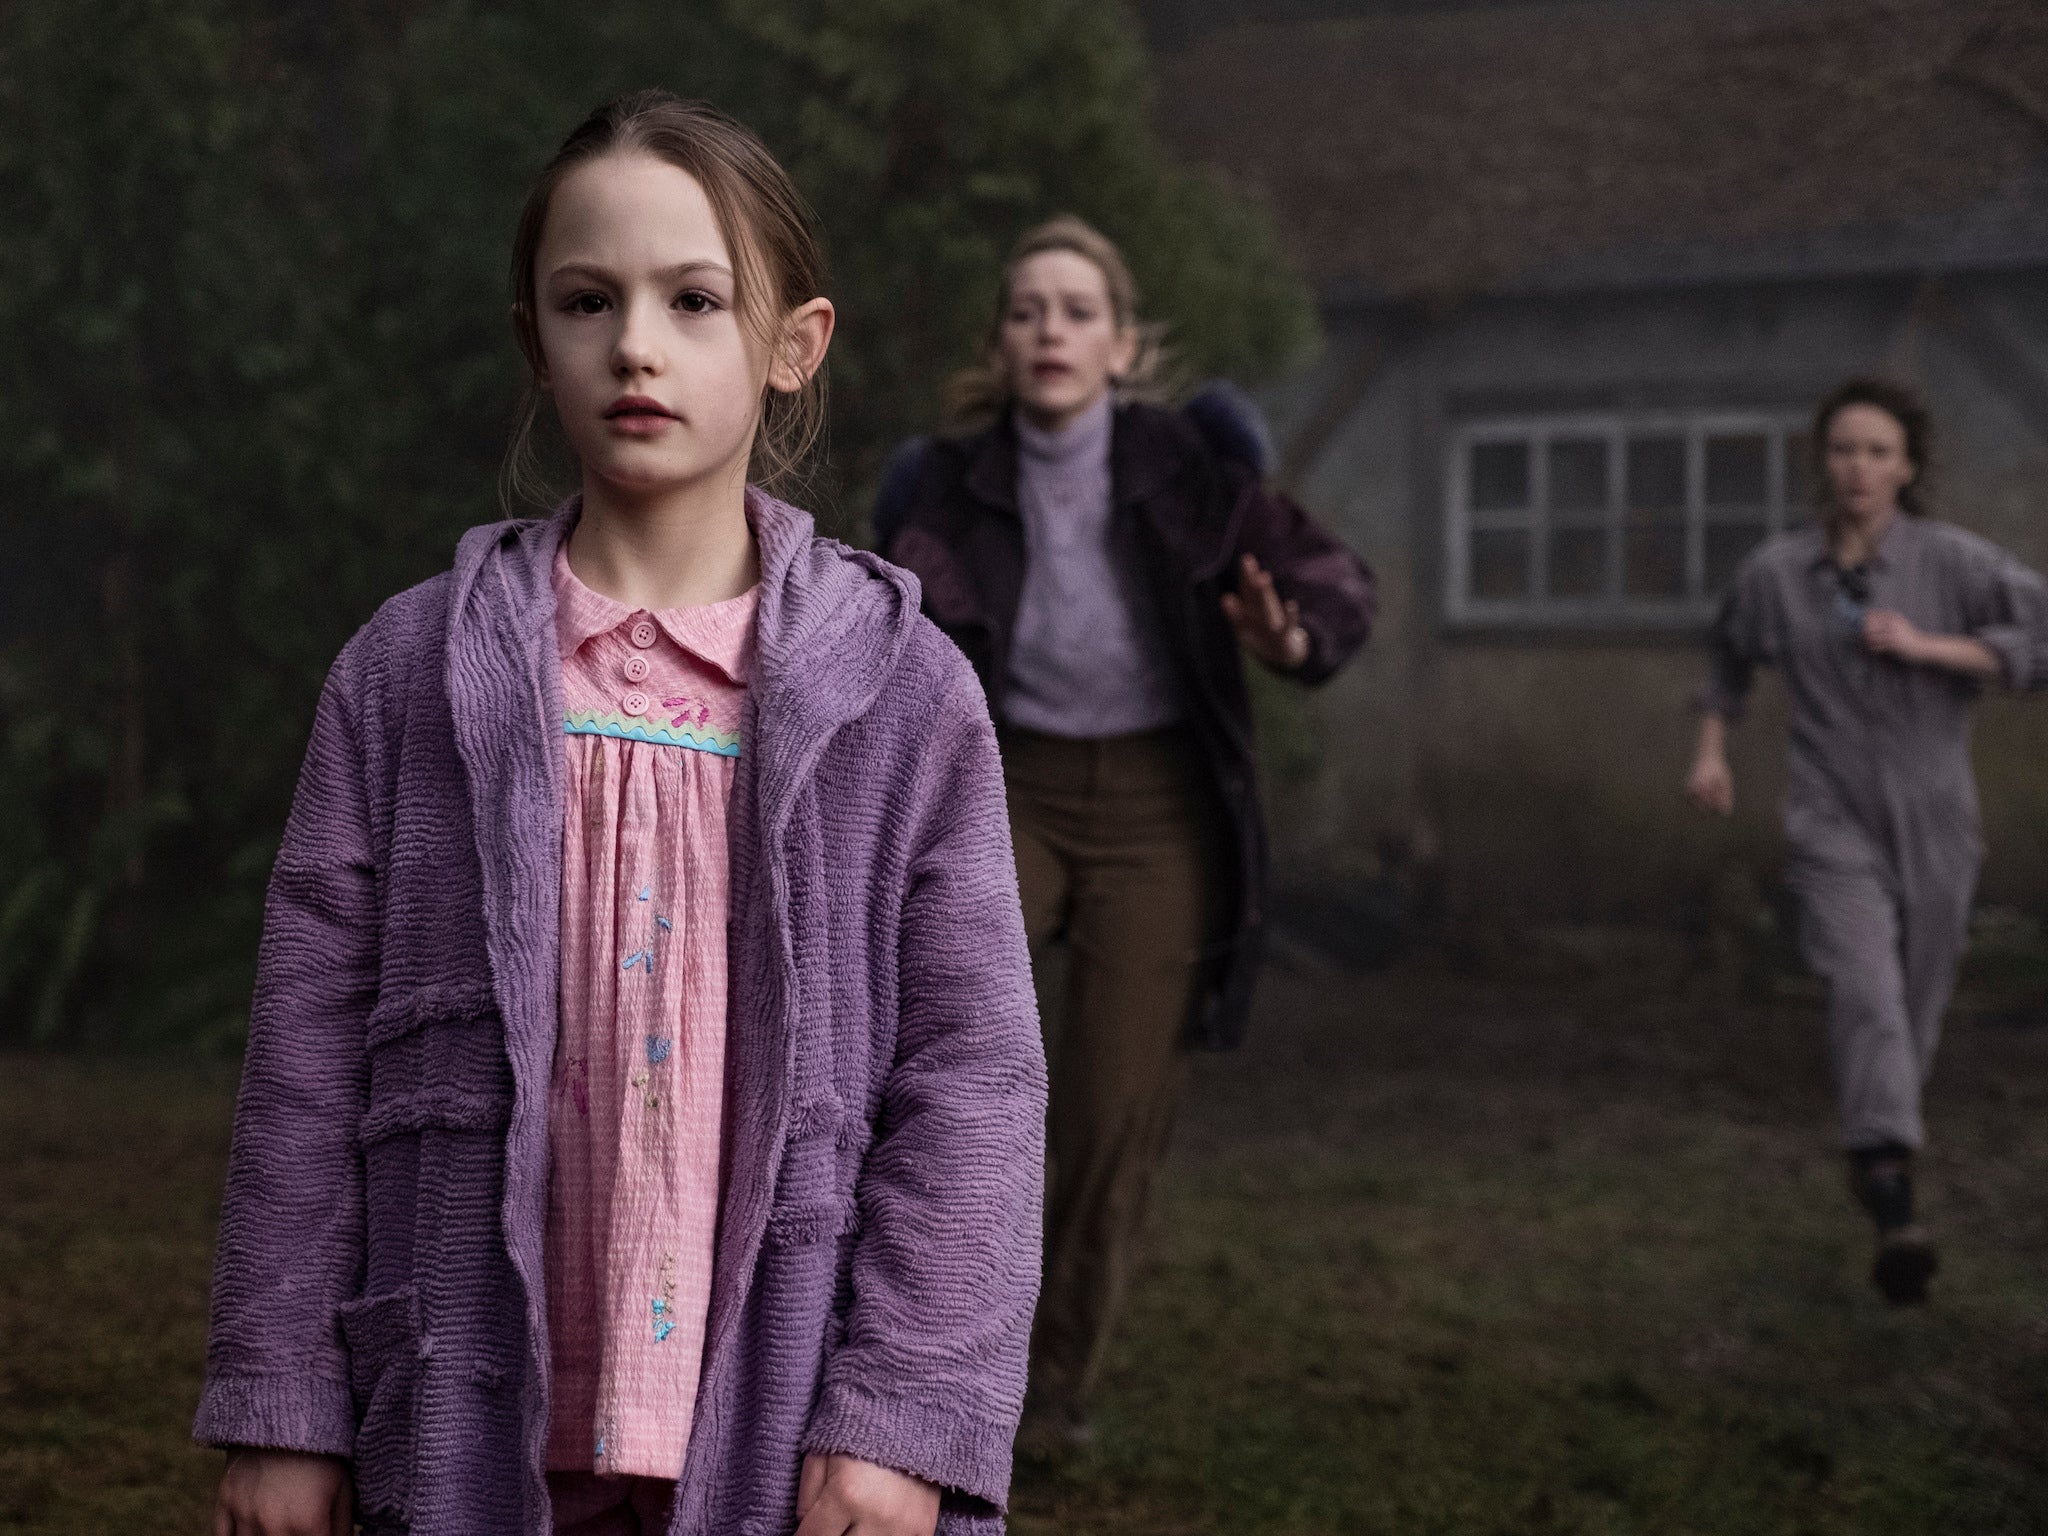 A ghostly mistake: Why Netflix's The Haunting of Bly Manor is terrifyingly underwhelming   The Independent